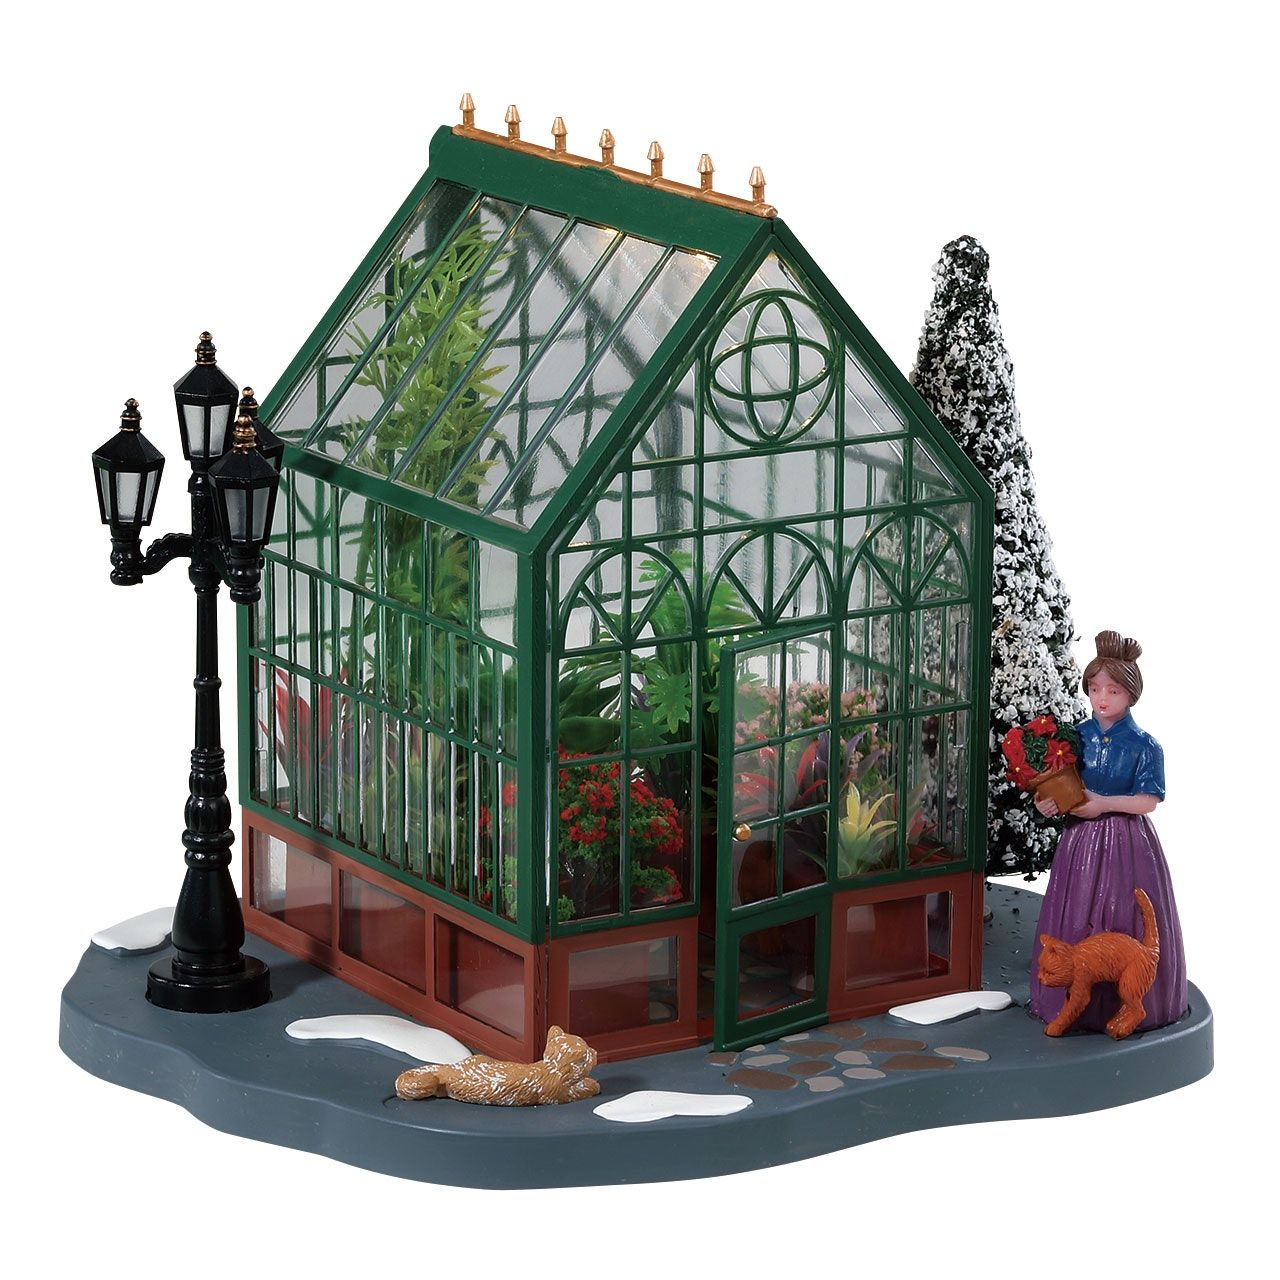 Victorian Greenhouse Victorian greenhouses, Christmas